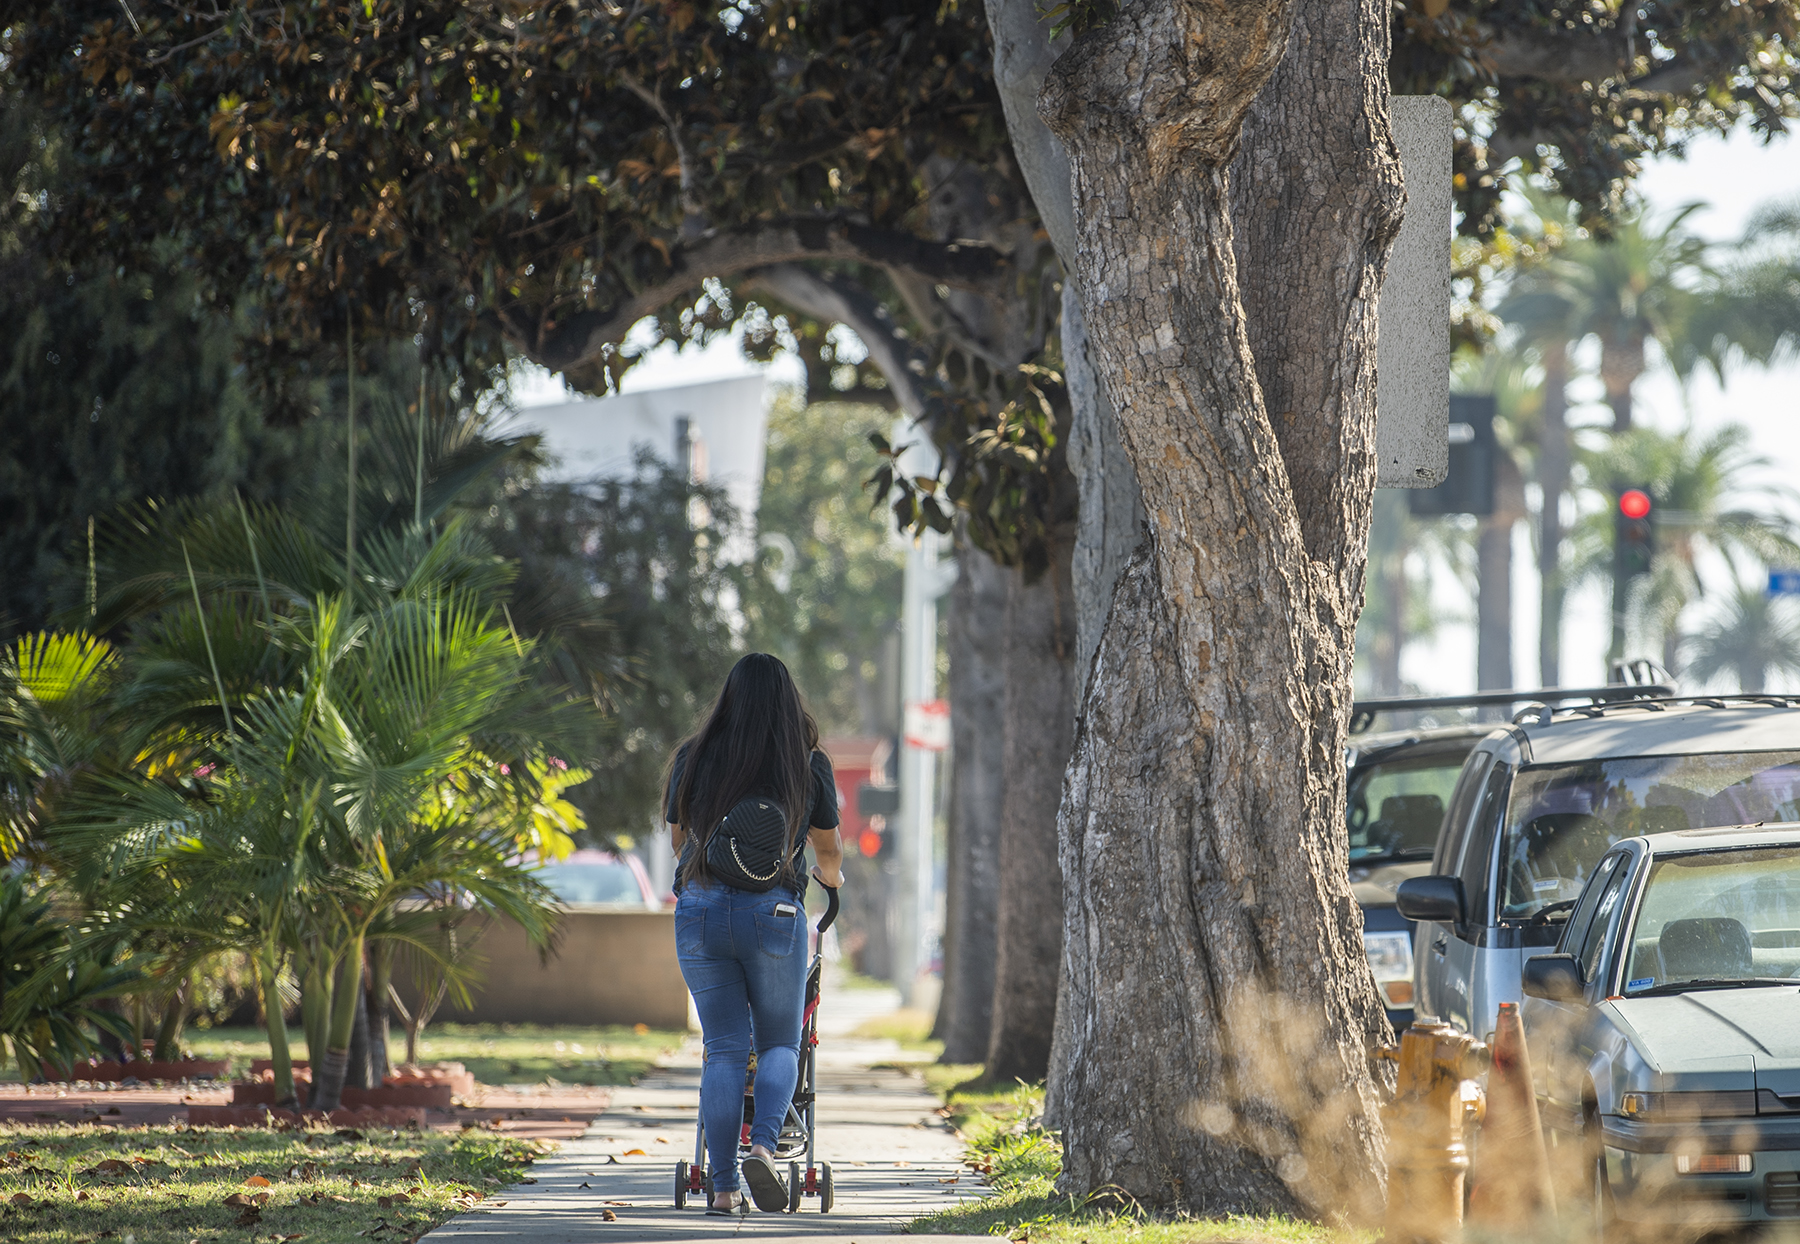 Long Beach magnolias could be doomed without proper care